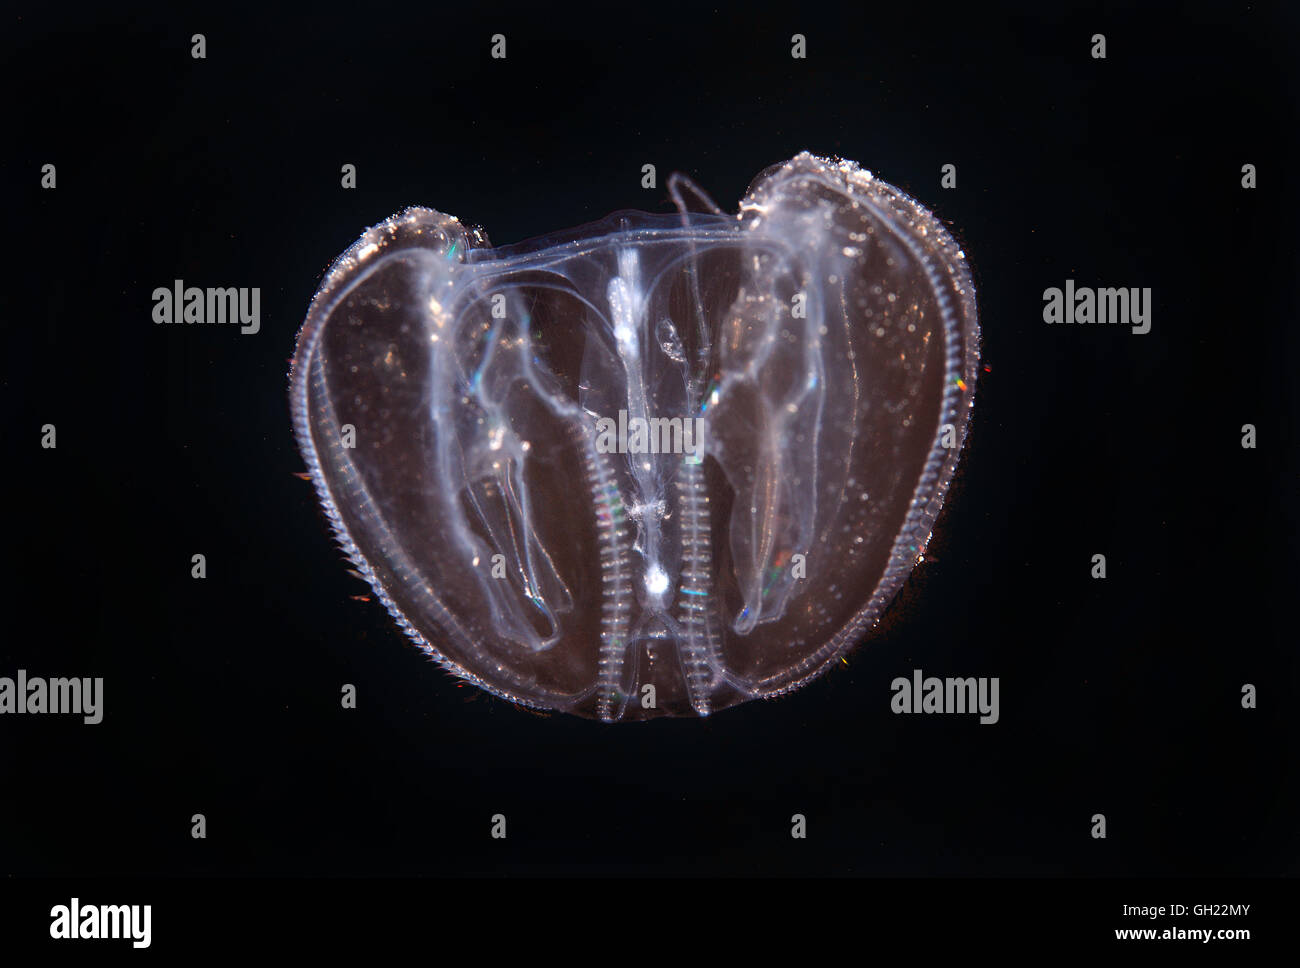 Sea Walnut, American comb jelly, Warty comb jelly or Leidy's comb jelly (Mnemiopsis leidyi) Black Sea - Stock Image